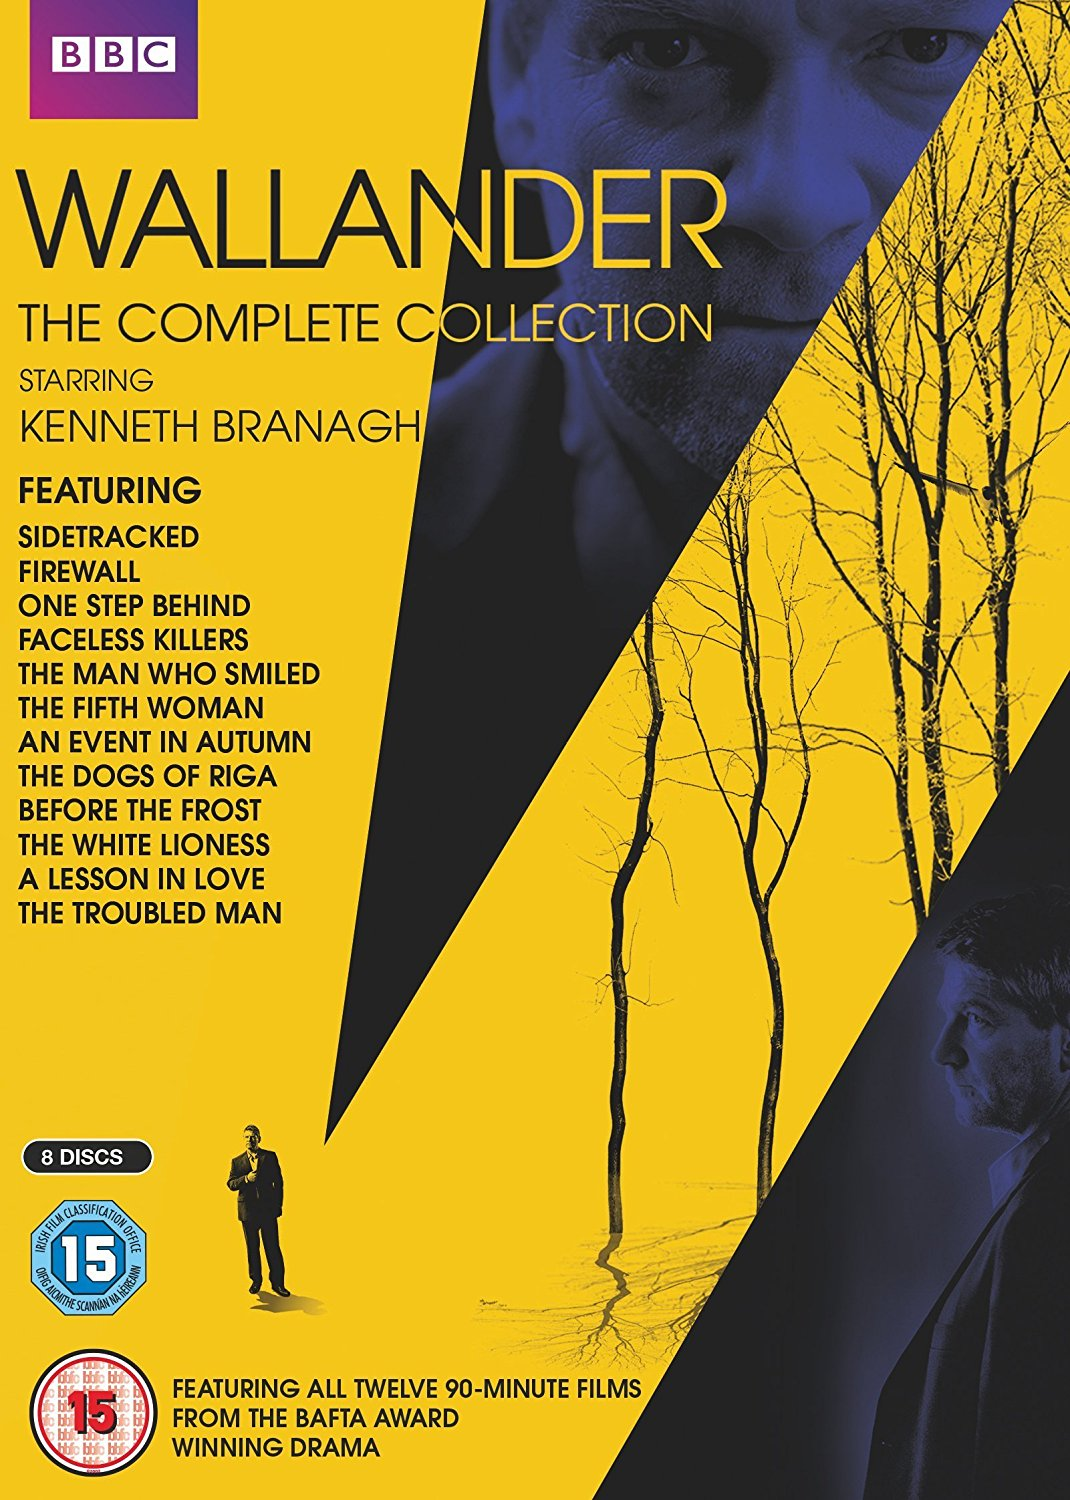 Wallander - BBC